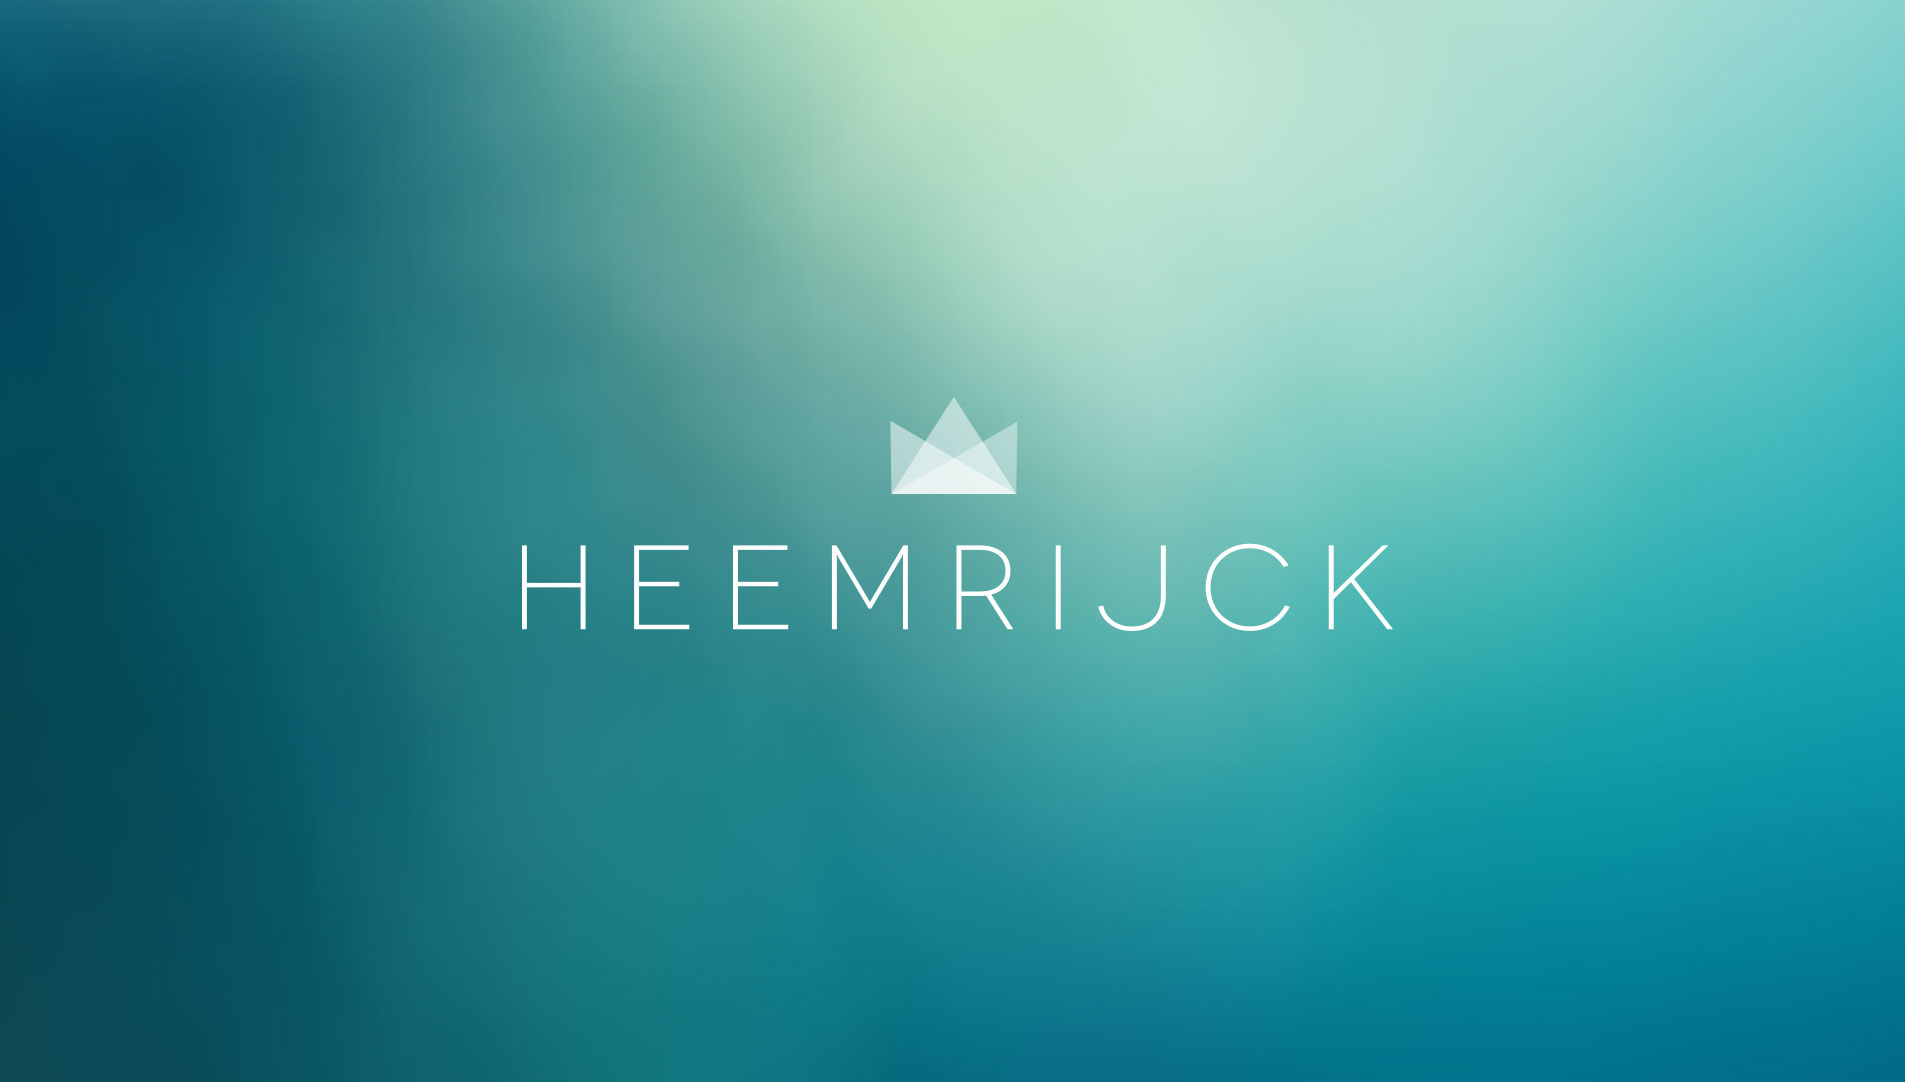 branding agency hk heemrijck slideshow 00